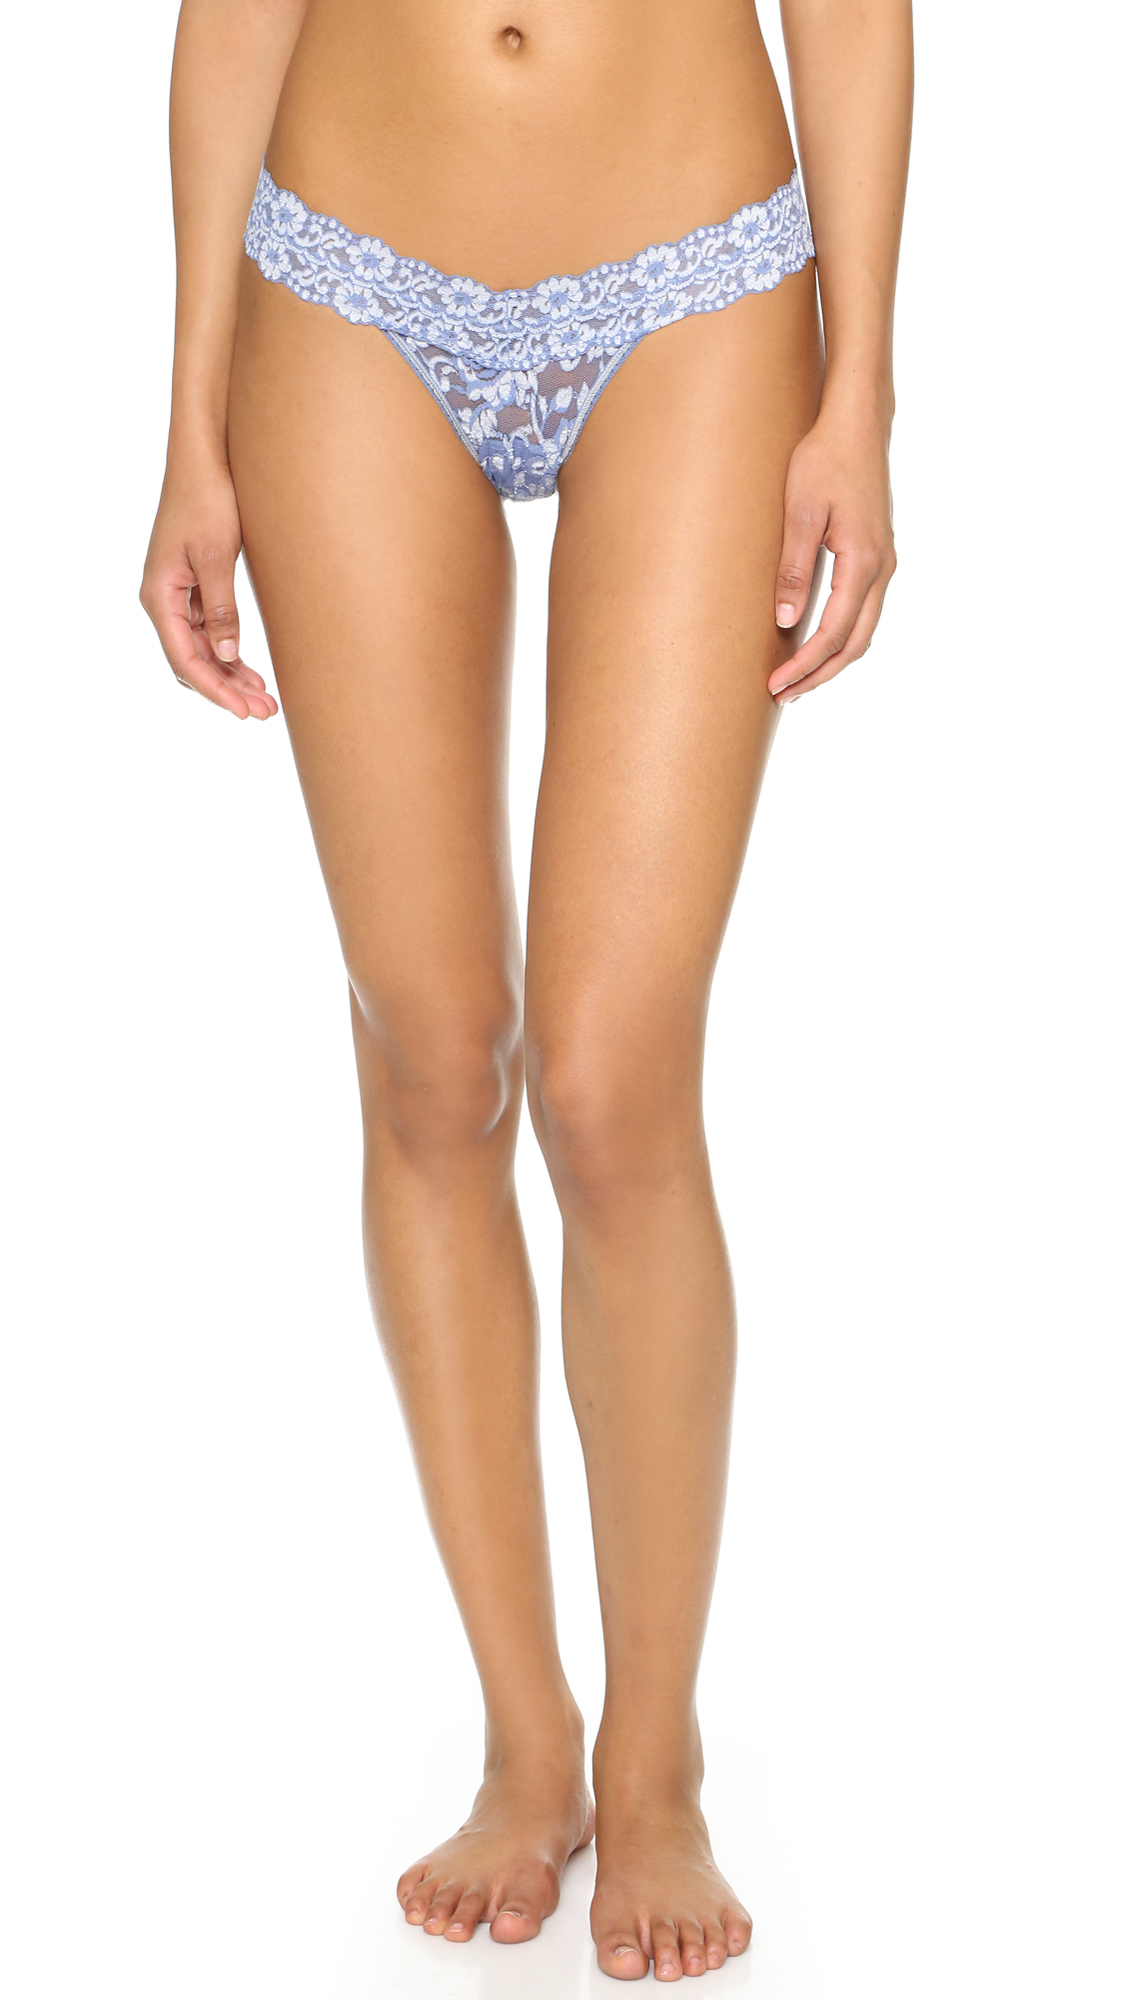 Hanky Panky Cross Dyed Signature Lace Low Rise Thong - Chambray/Ivory at Shopbop